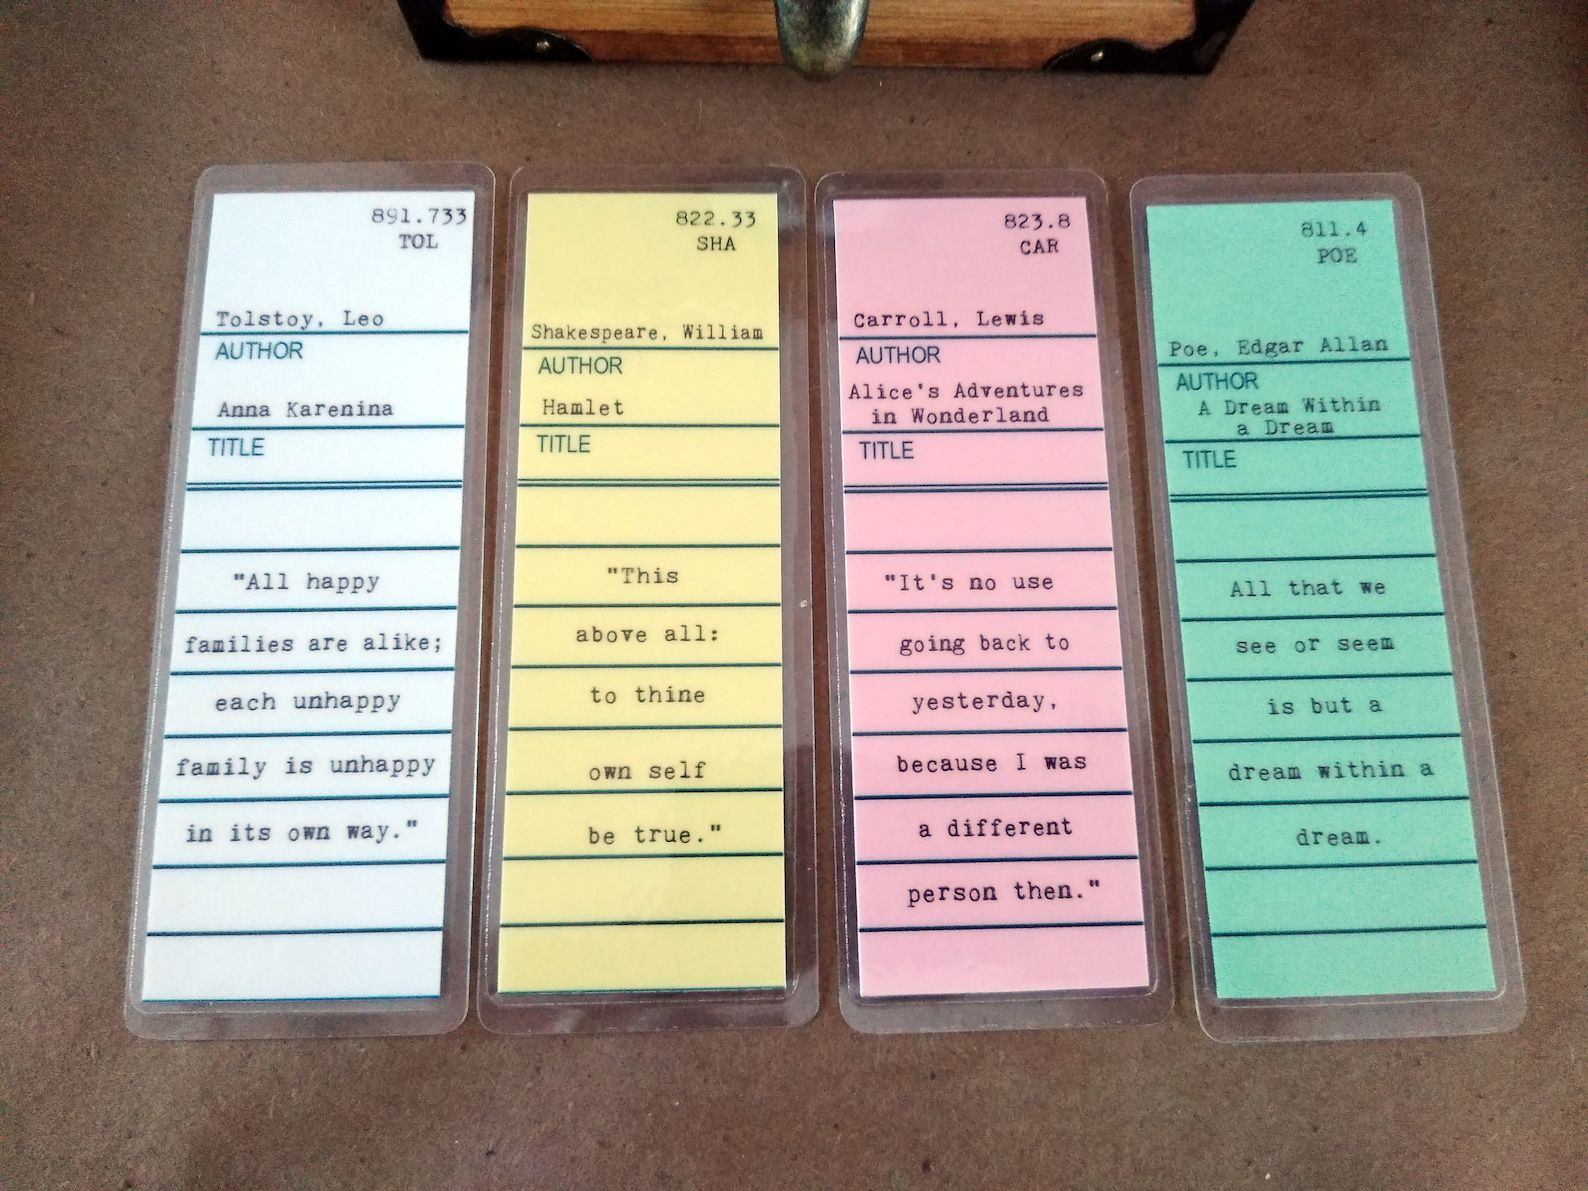 Four bookmarks in the style of library cards featuring titles of various classic novels and a call number and famous quote from the book.